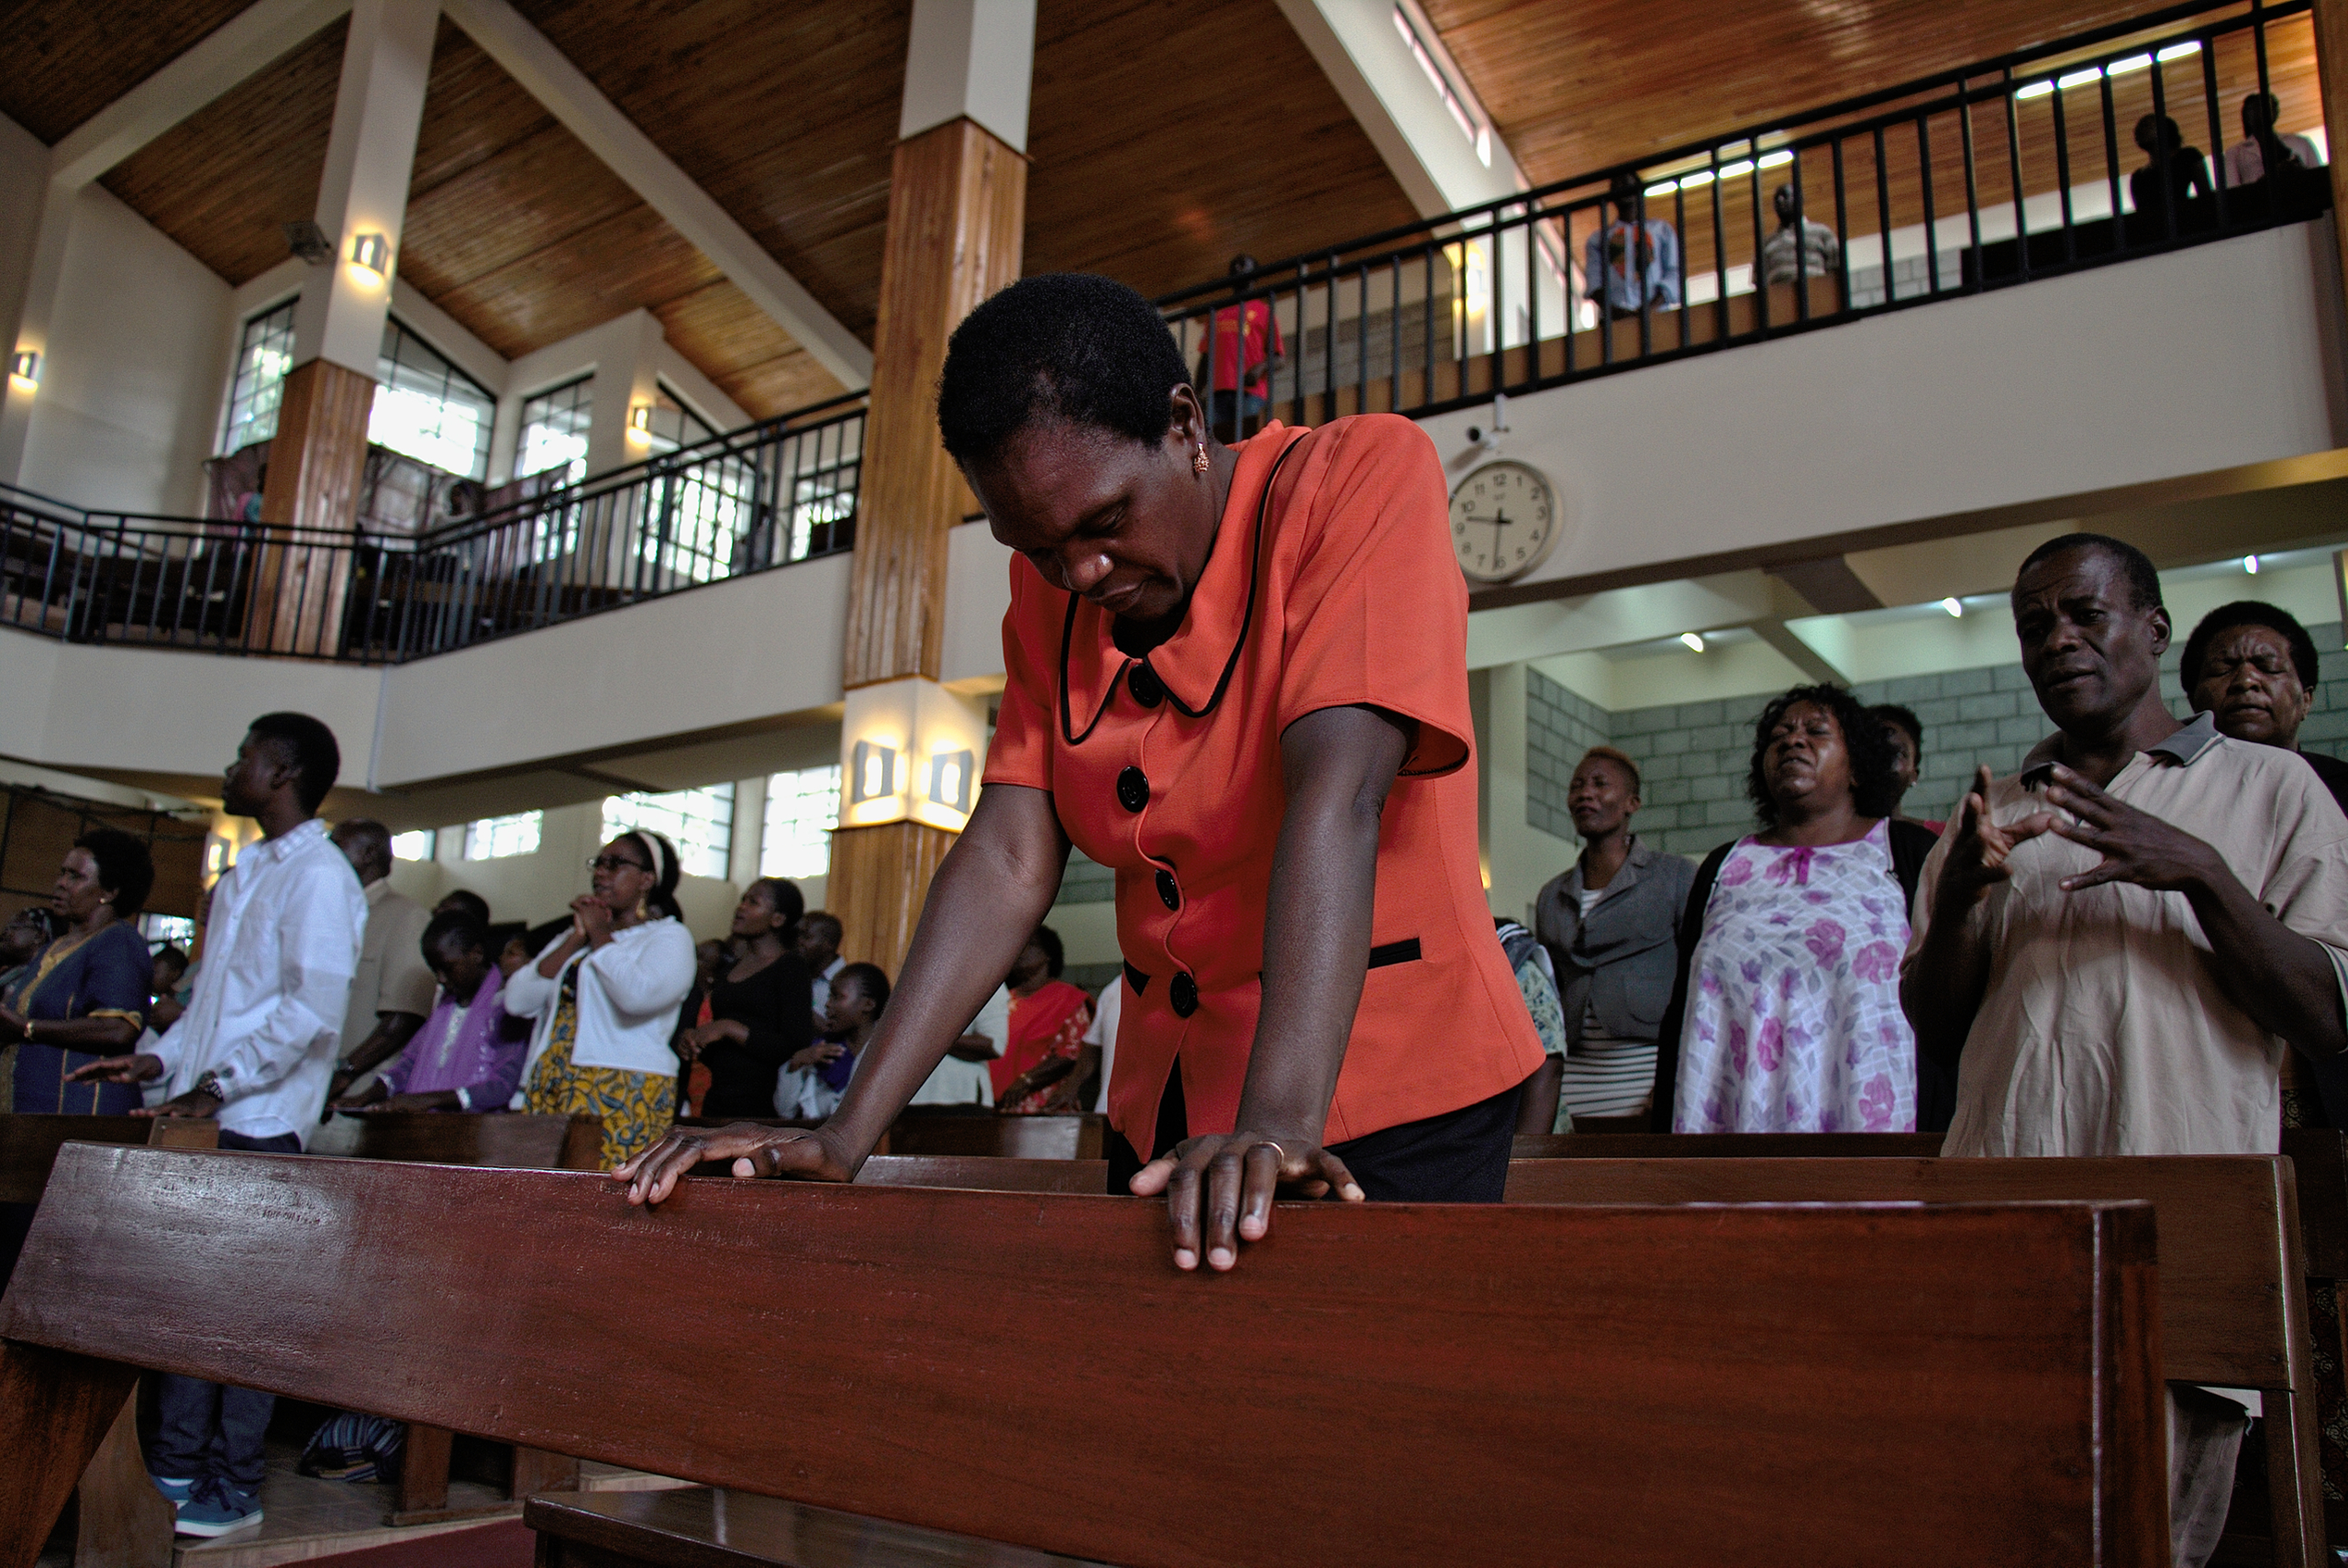 1. A woman's hands clasped in prayer during silent worship at the Friends International Centre in Nairobi, Kenya. 2. A churchgoer prays during a Sunday service at the Friends International Centre in Nairobi.